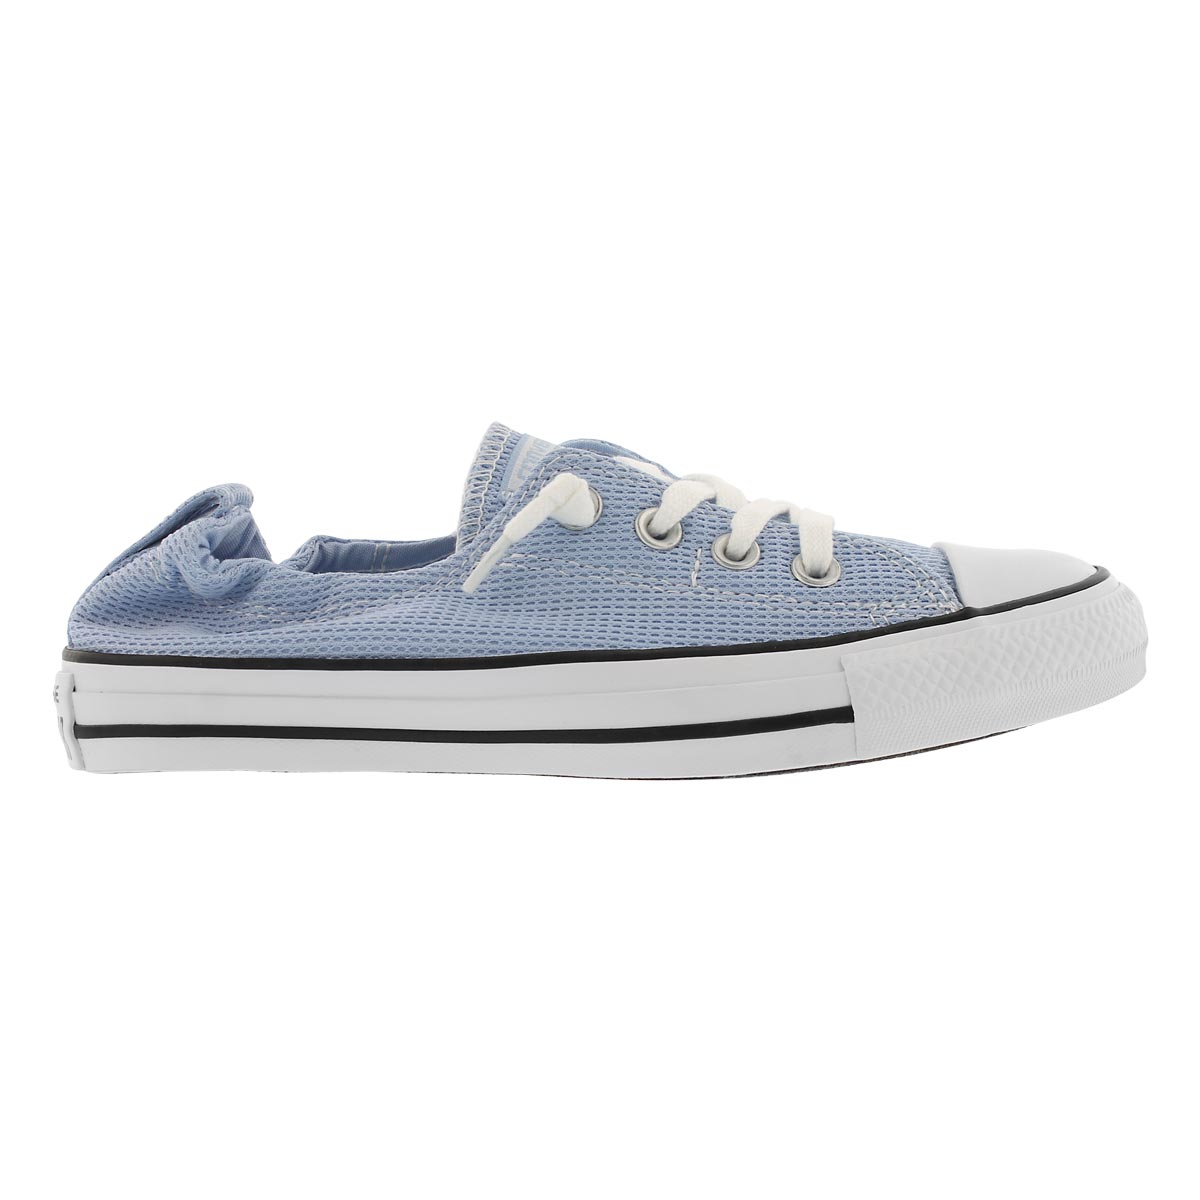 Lds CTAS Shoreline Seasonal blue chill